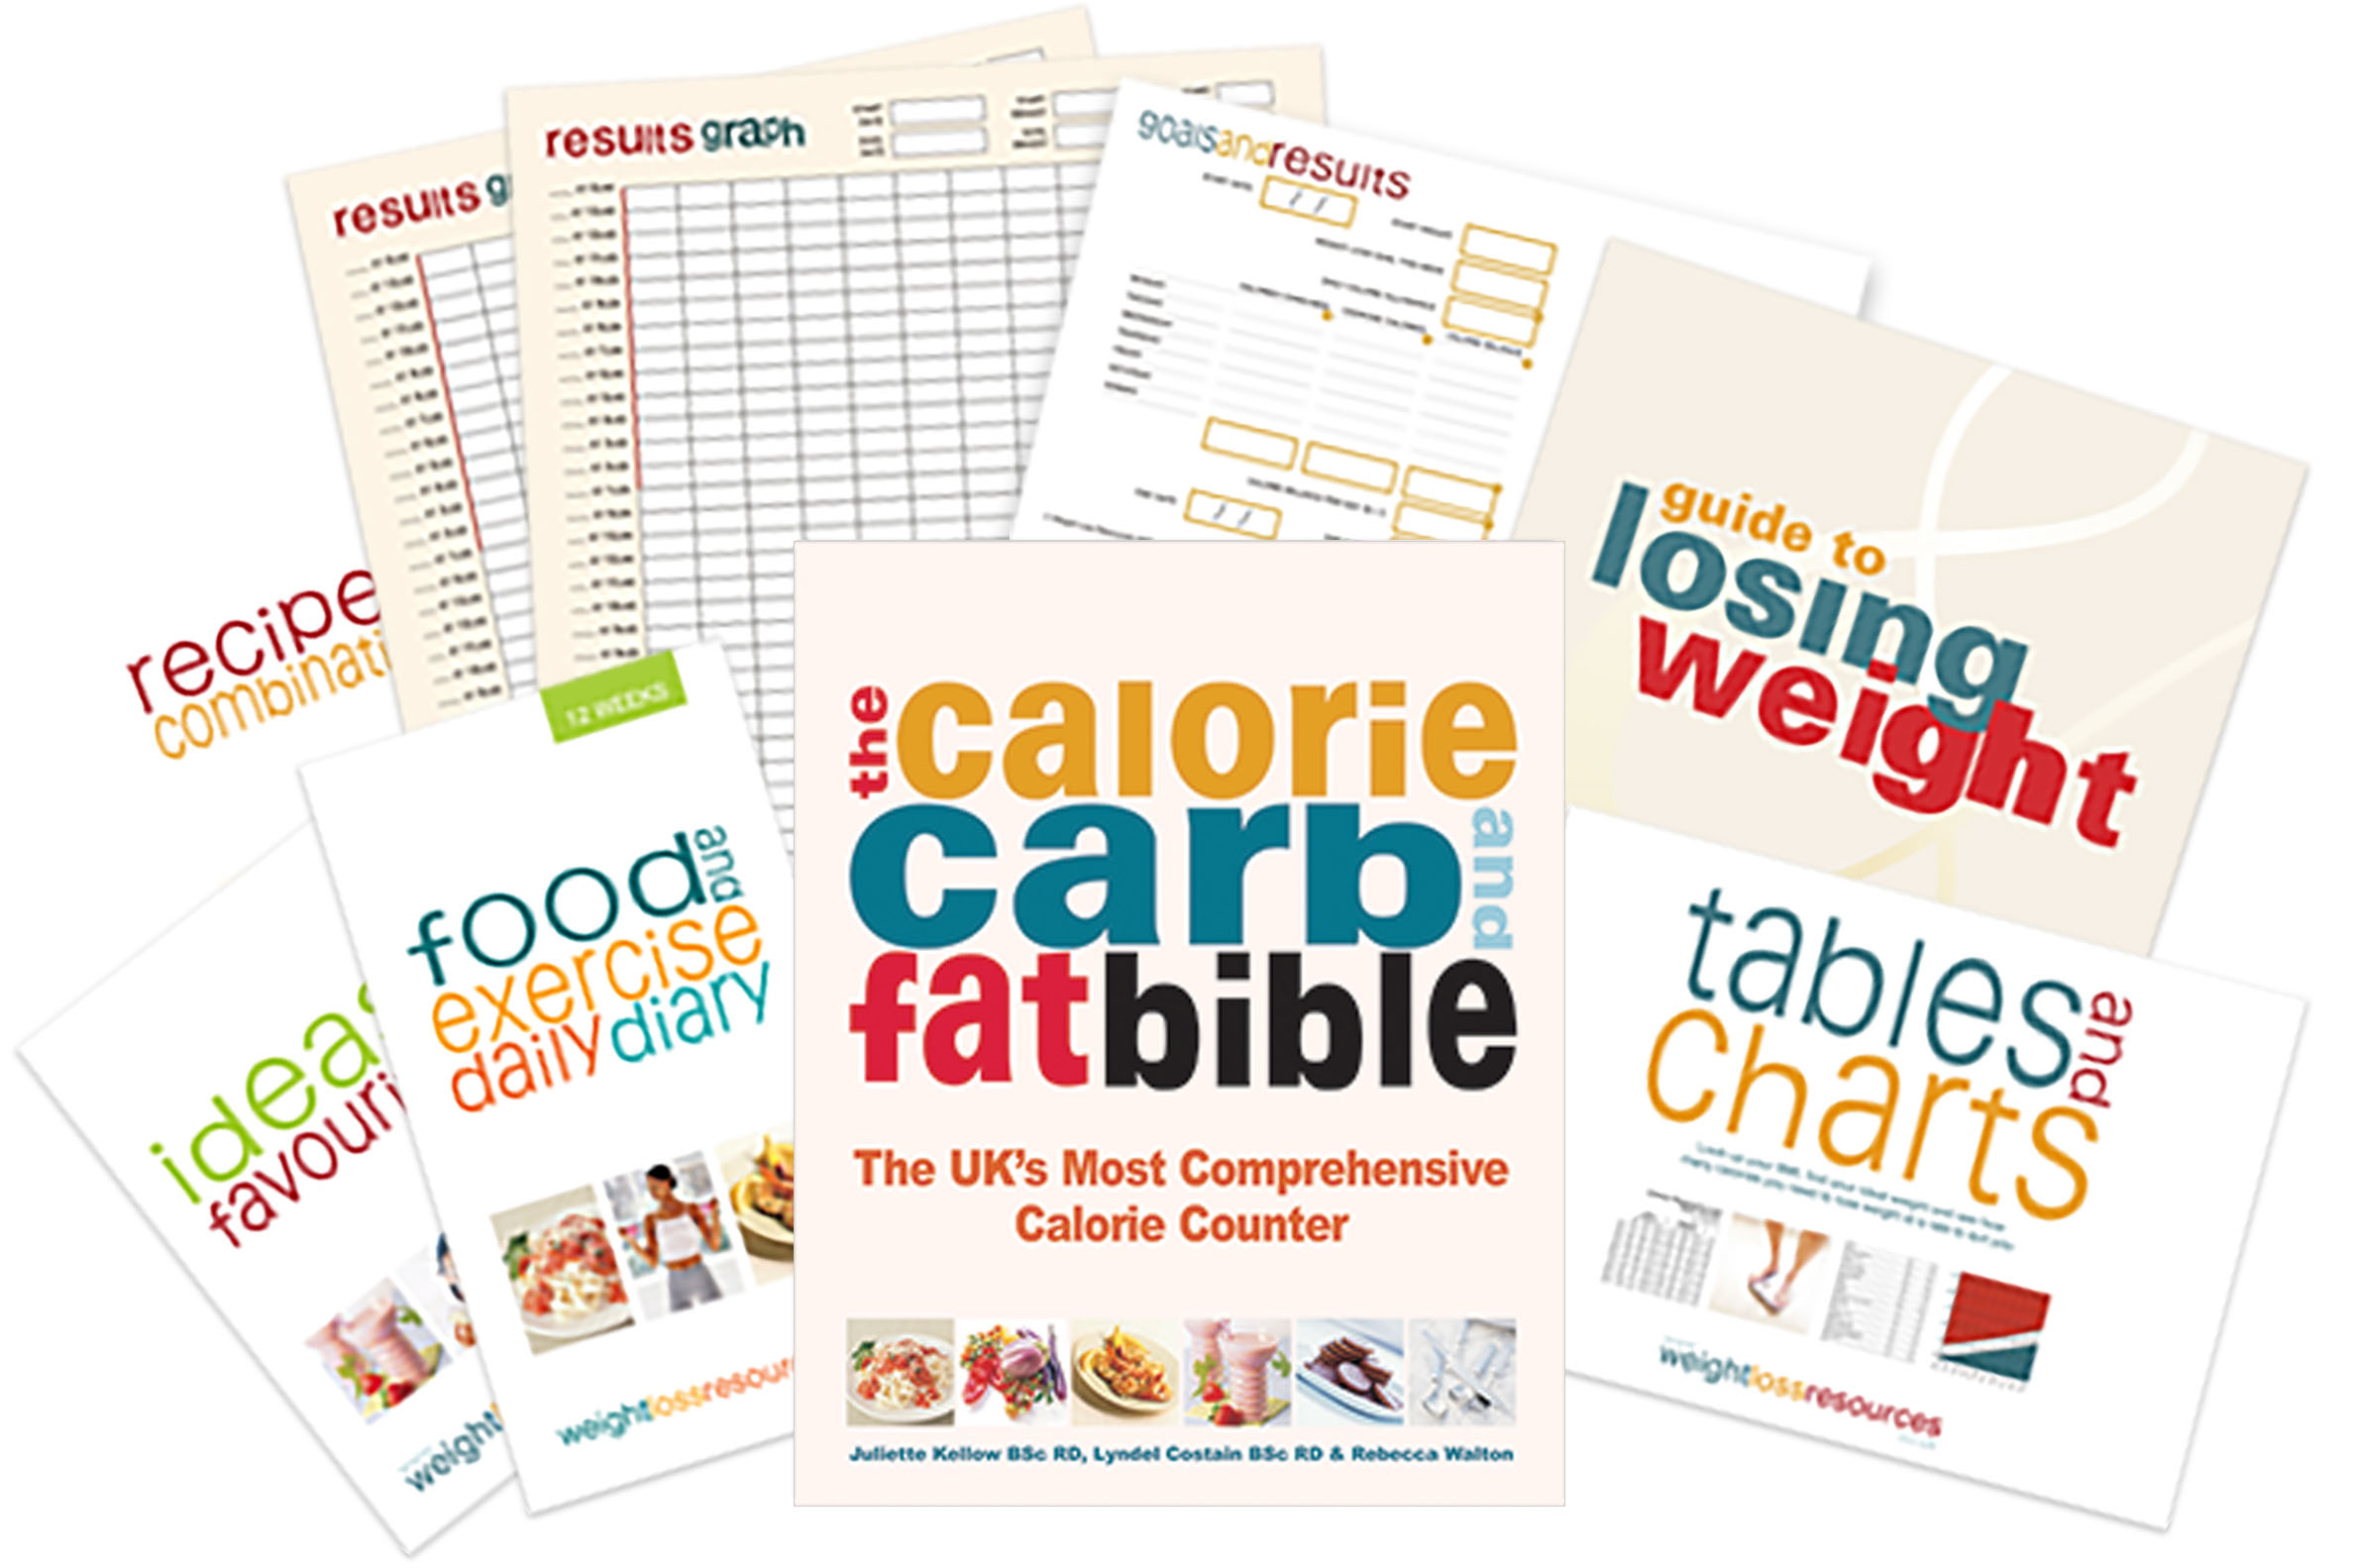 Diet And Fitness Resources Shop For Weight Loss And Home Fitness